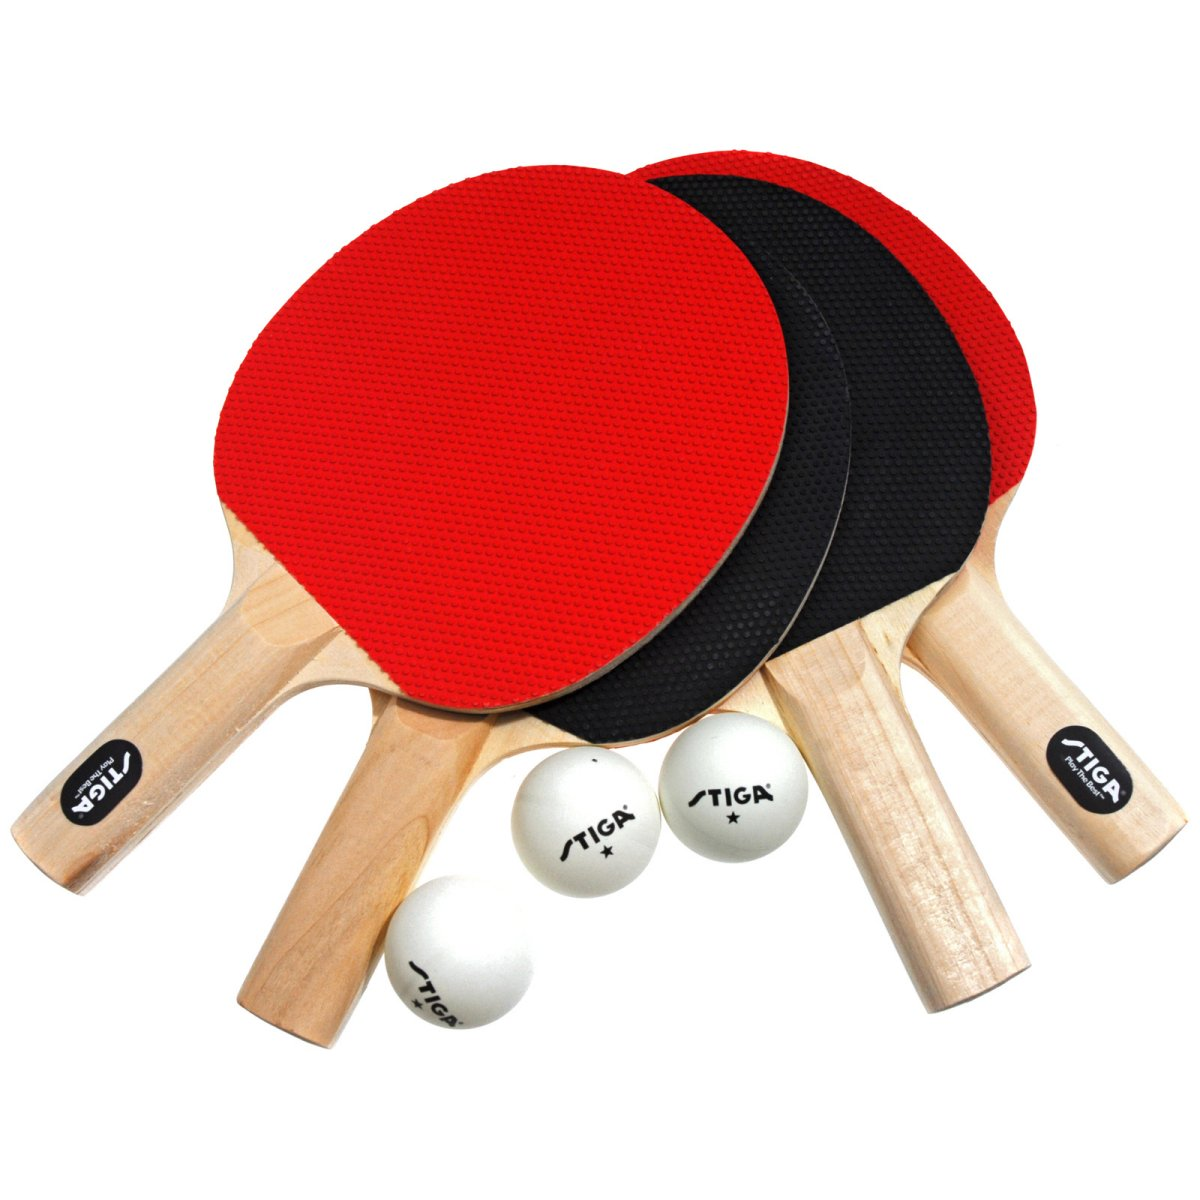 Review of Stiga Classic 4-Player Table Tennis Racket Set